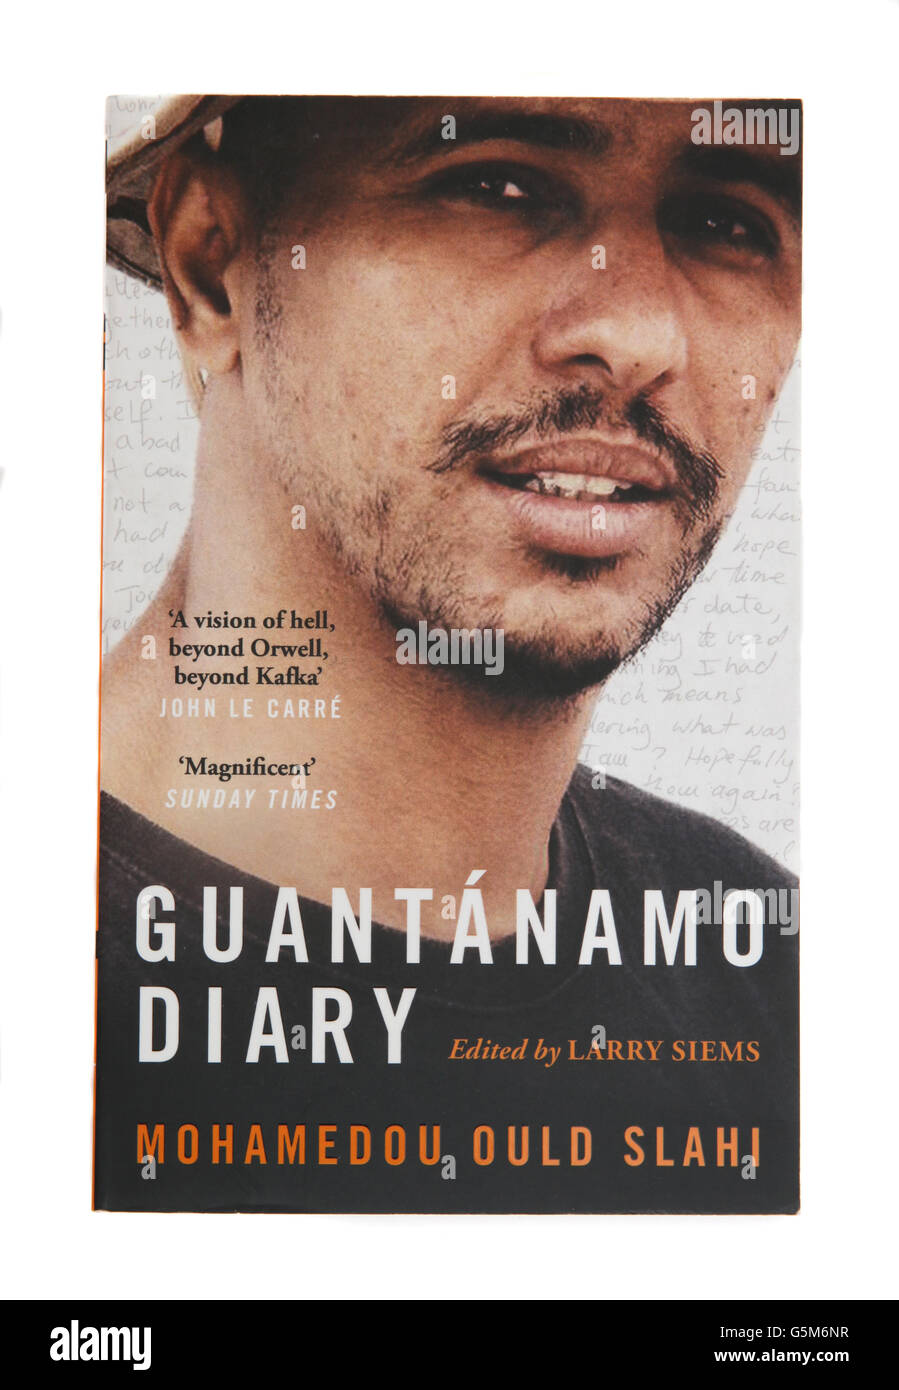 The book - Guantanamo Diary by Mohamedou Ould - Stock Image